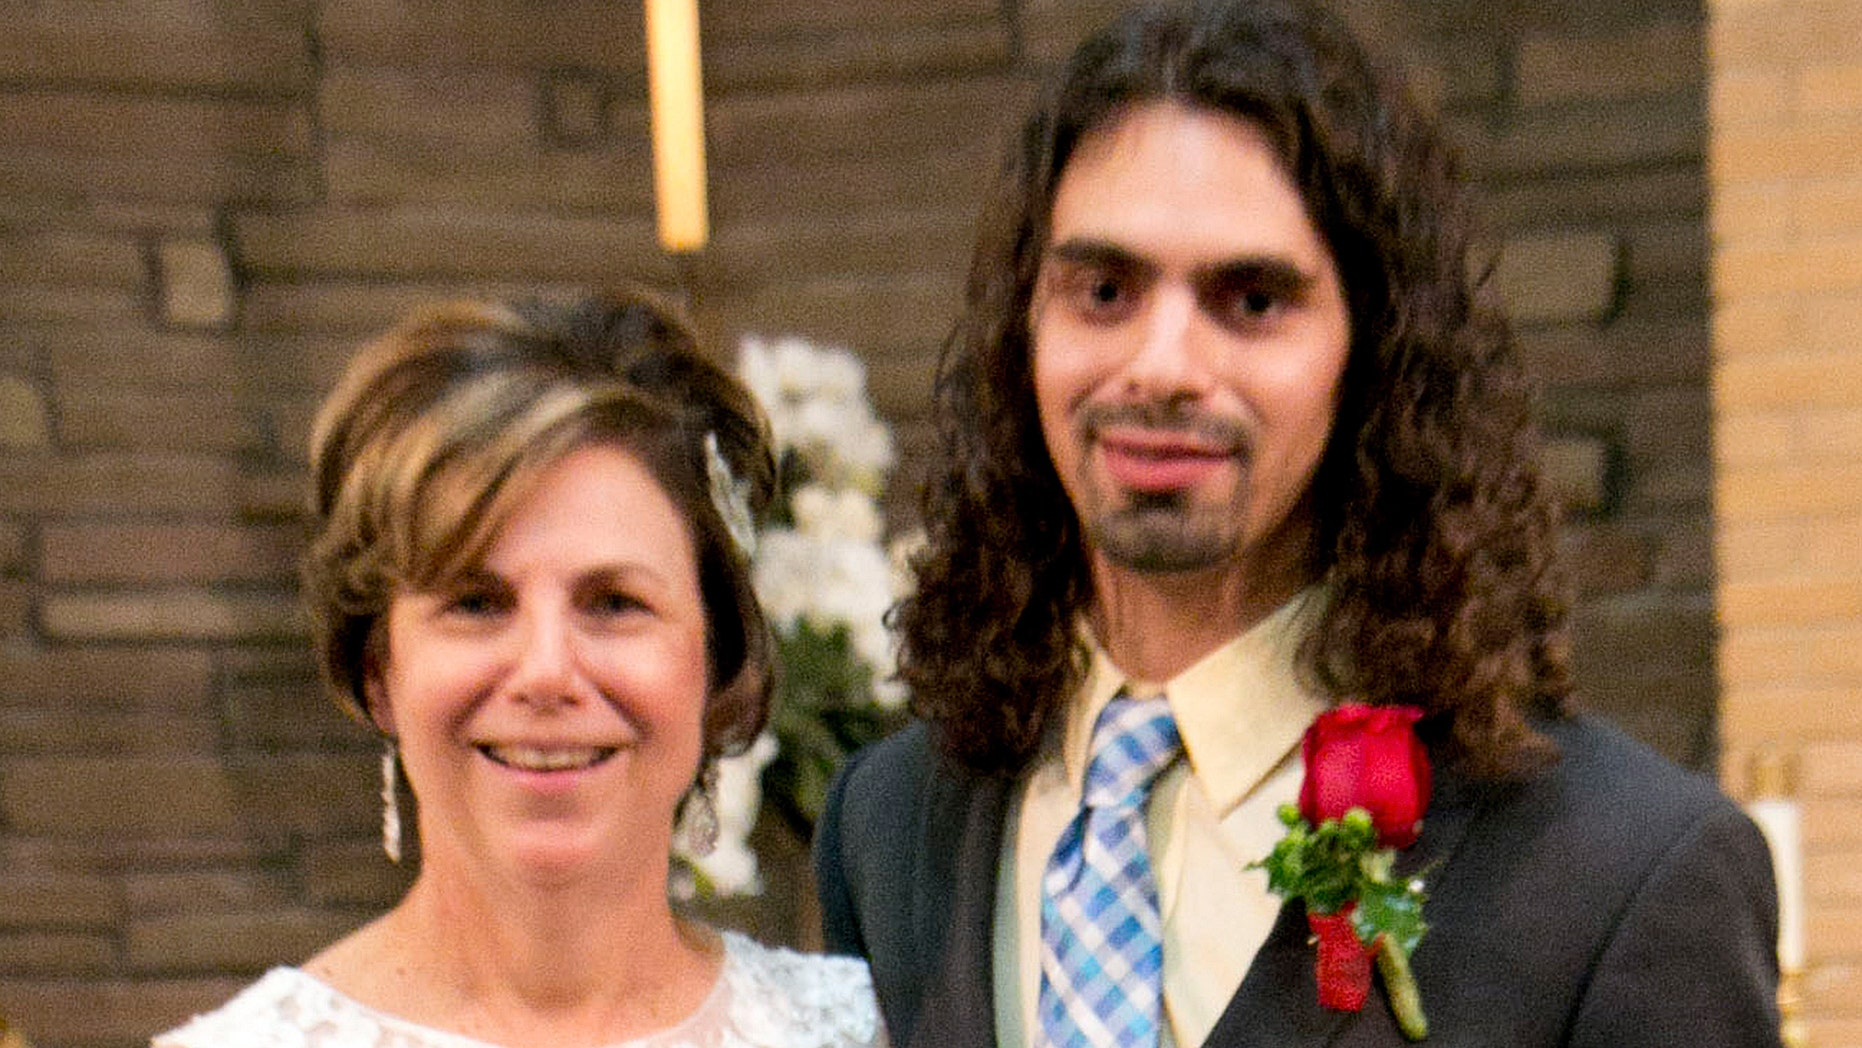 Pam Garozzo and her son, Carlos, three weeks before he died from a drug overdose.